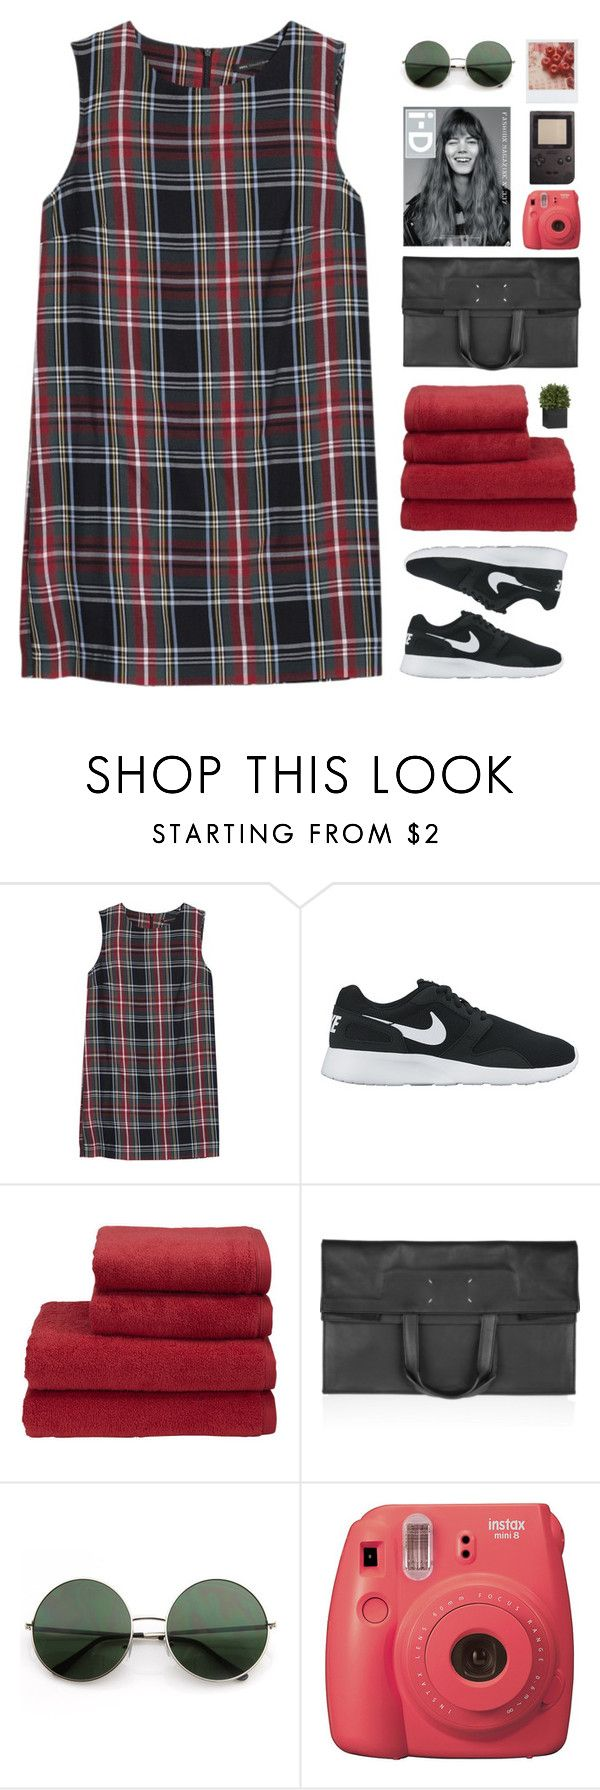 """que te sueño y que te quiero tanto"" by via-m ❤ liked on Polyvore featuring MANGO, NIKE, Christy, Maison Margiela, Fujifilm and Crate and Barrel"